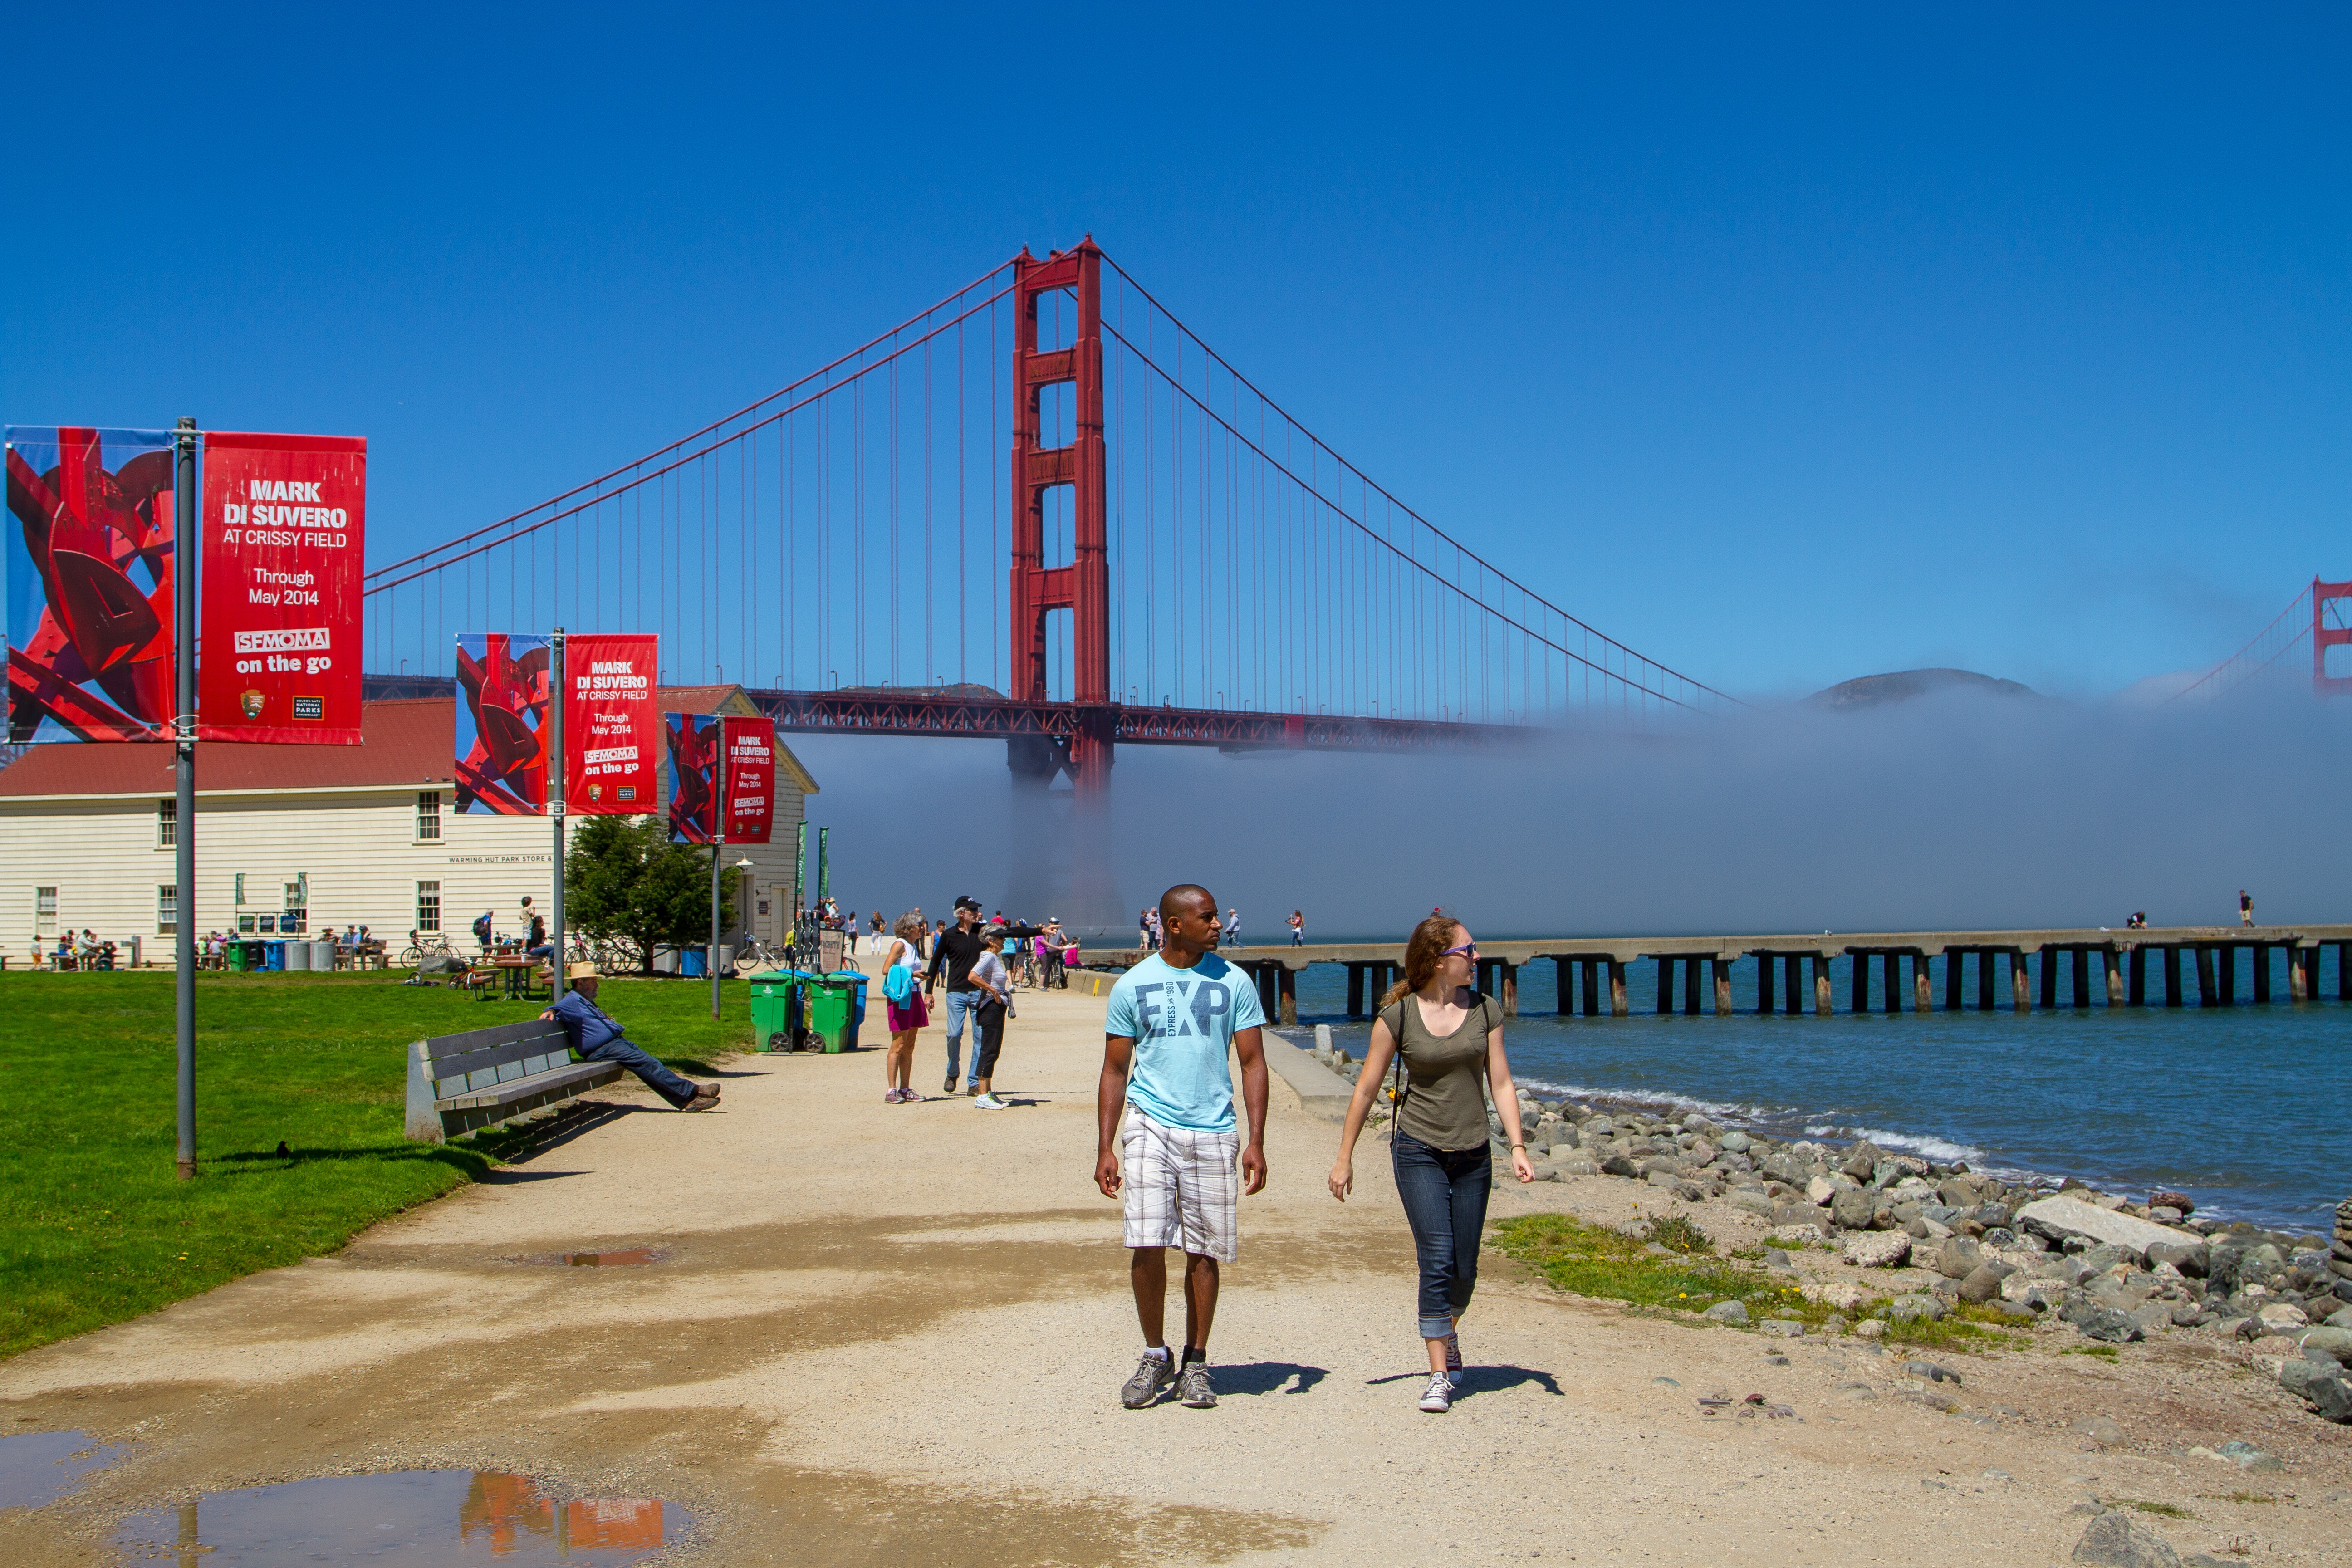 People walk along San Francisco Bay on a bright blue day with the Golden Gate Bridge and fog in the background. The white Warming Hut and red banners are left of the trail.